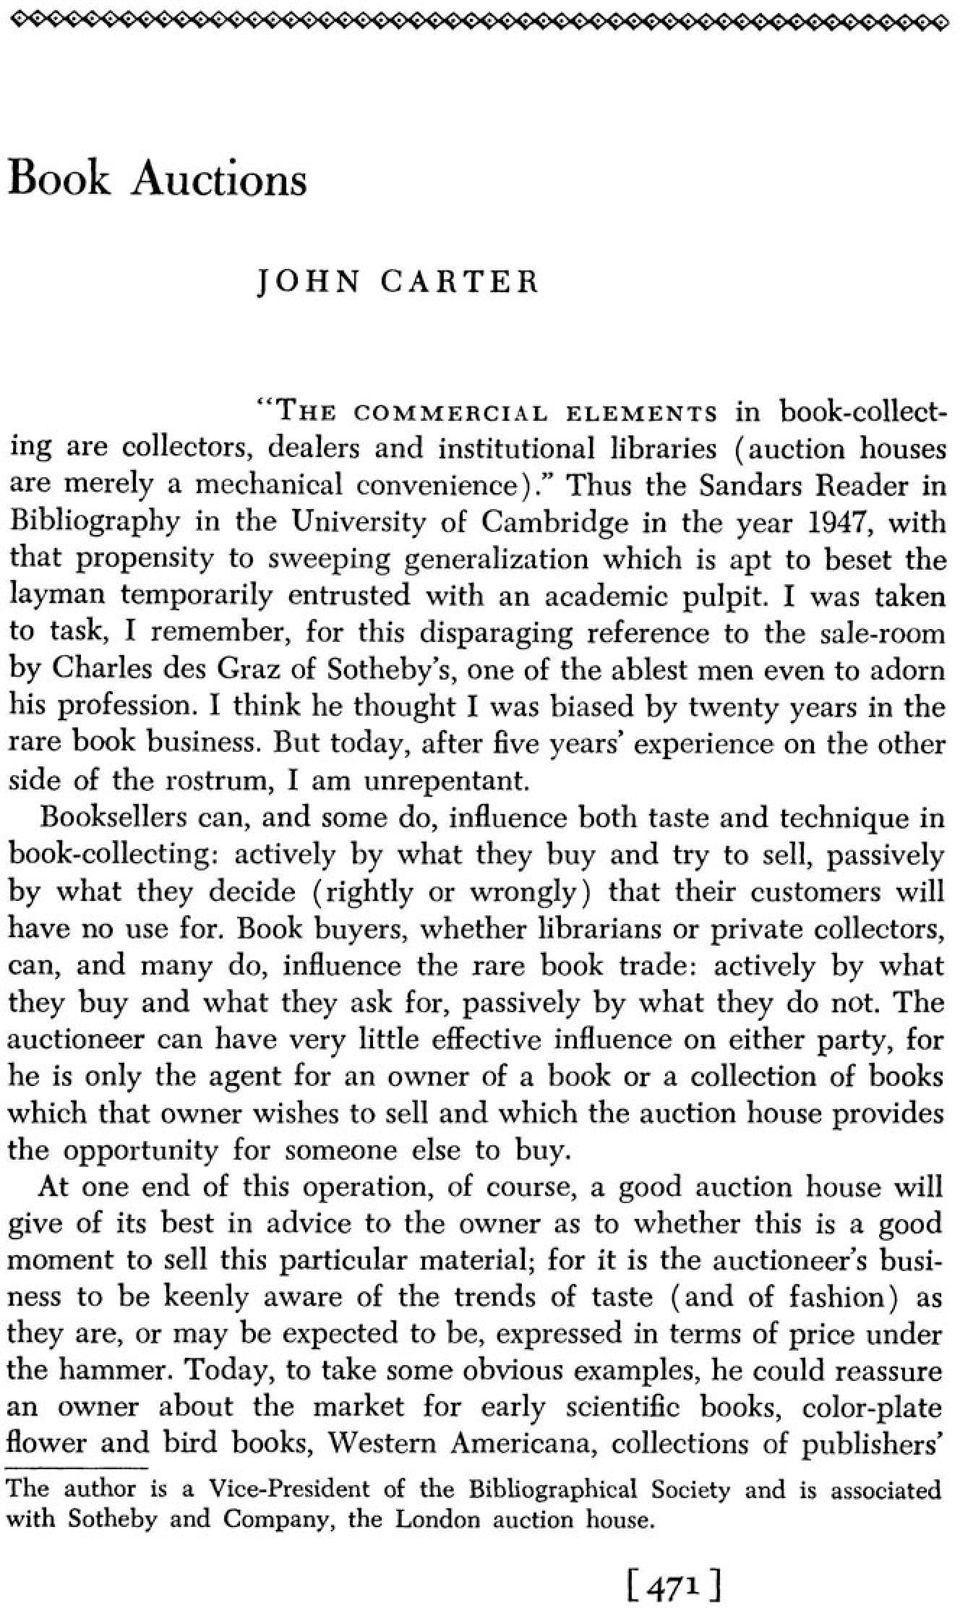 an academic pulpit. I was taken to task, I remember, for this disparaging reference to the sale-room by Charles des Graz of Sotheby's, one of the ablest men even to adorn his profession.